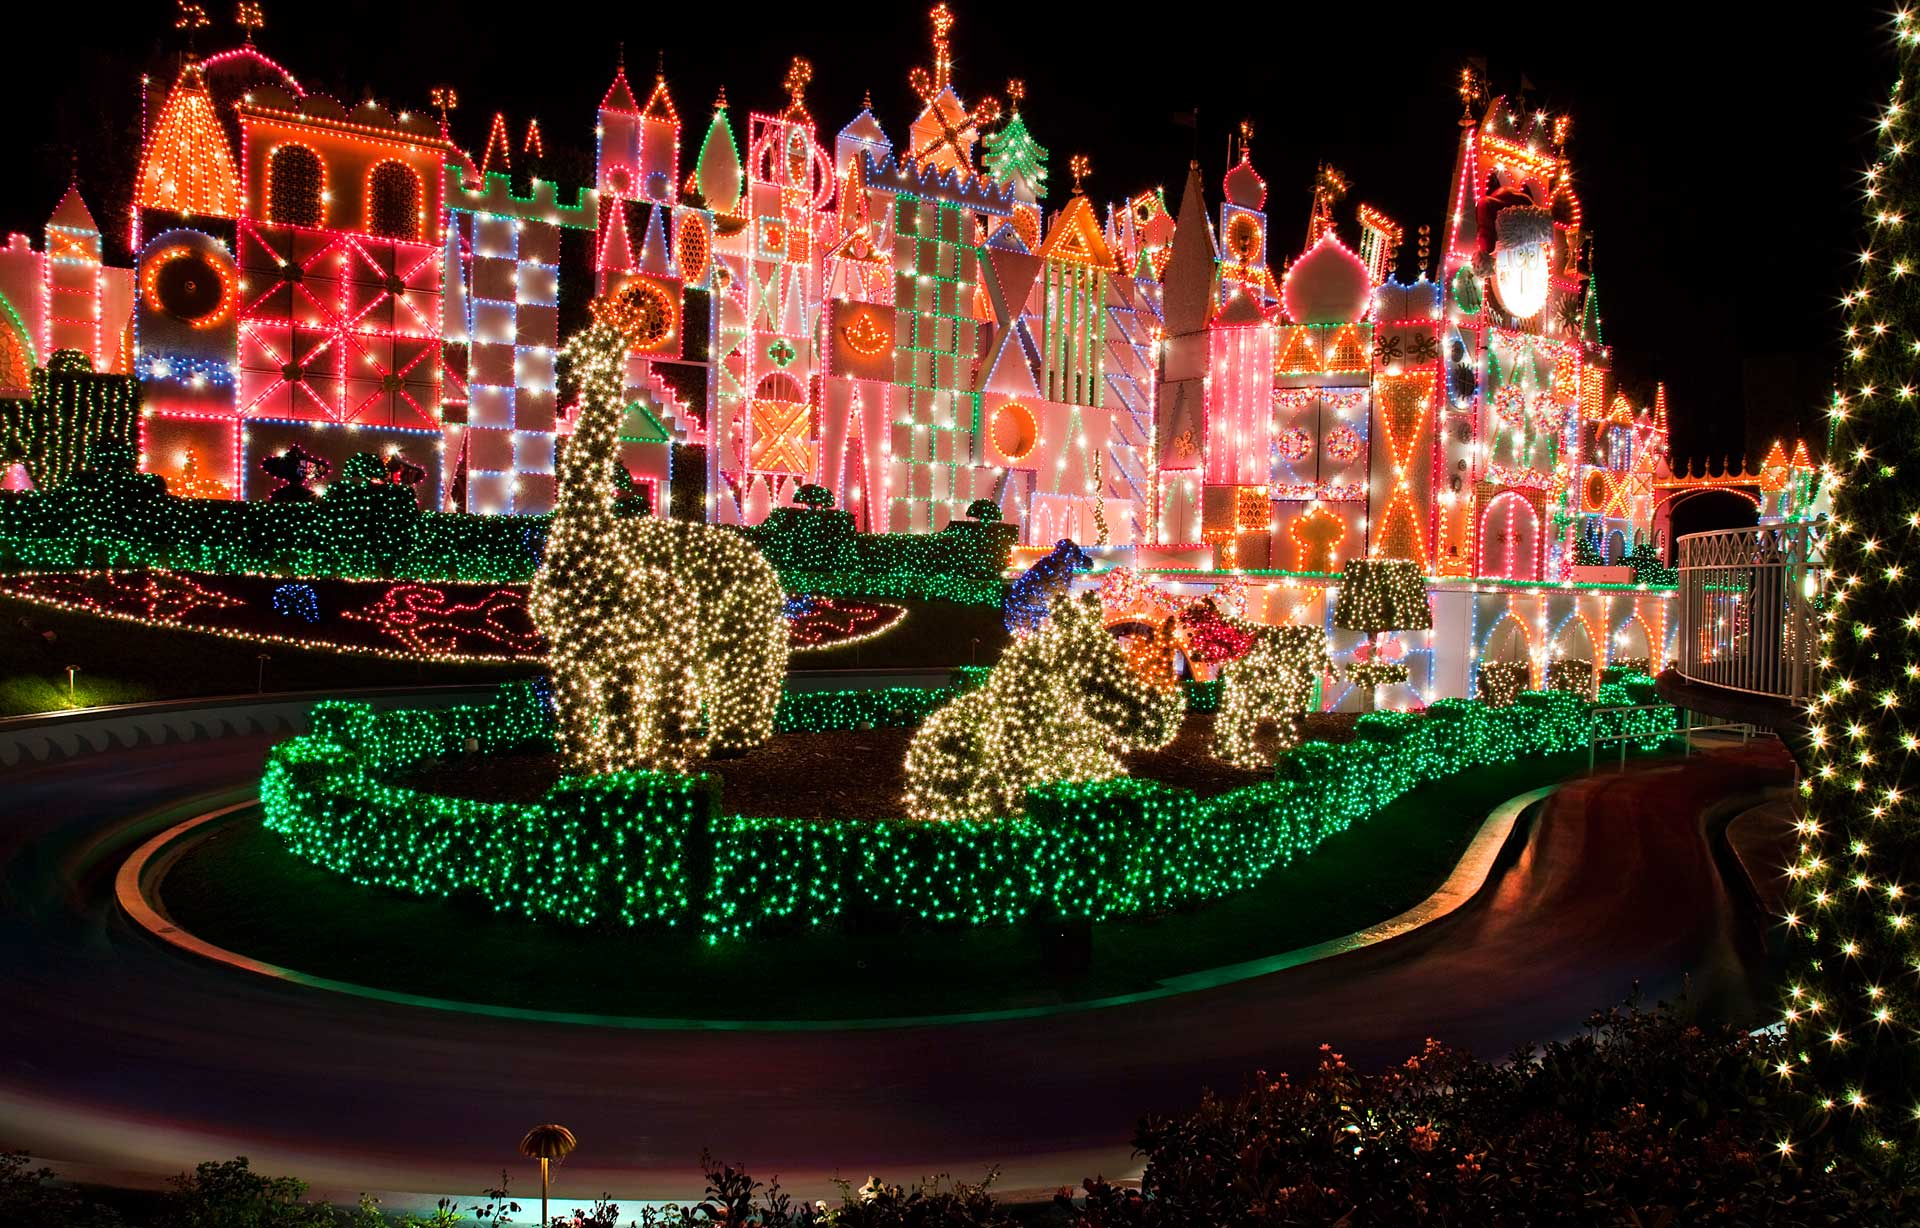 details holidays at the disneyland resort nov 9 jan 6 the geeks blog disneygeekcom